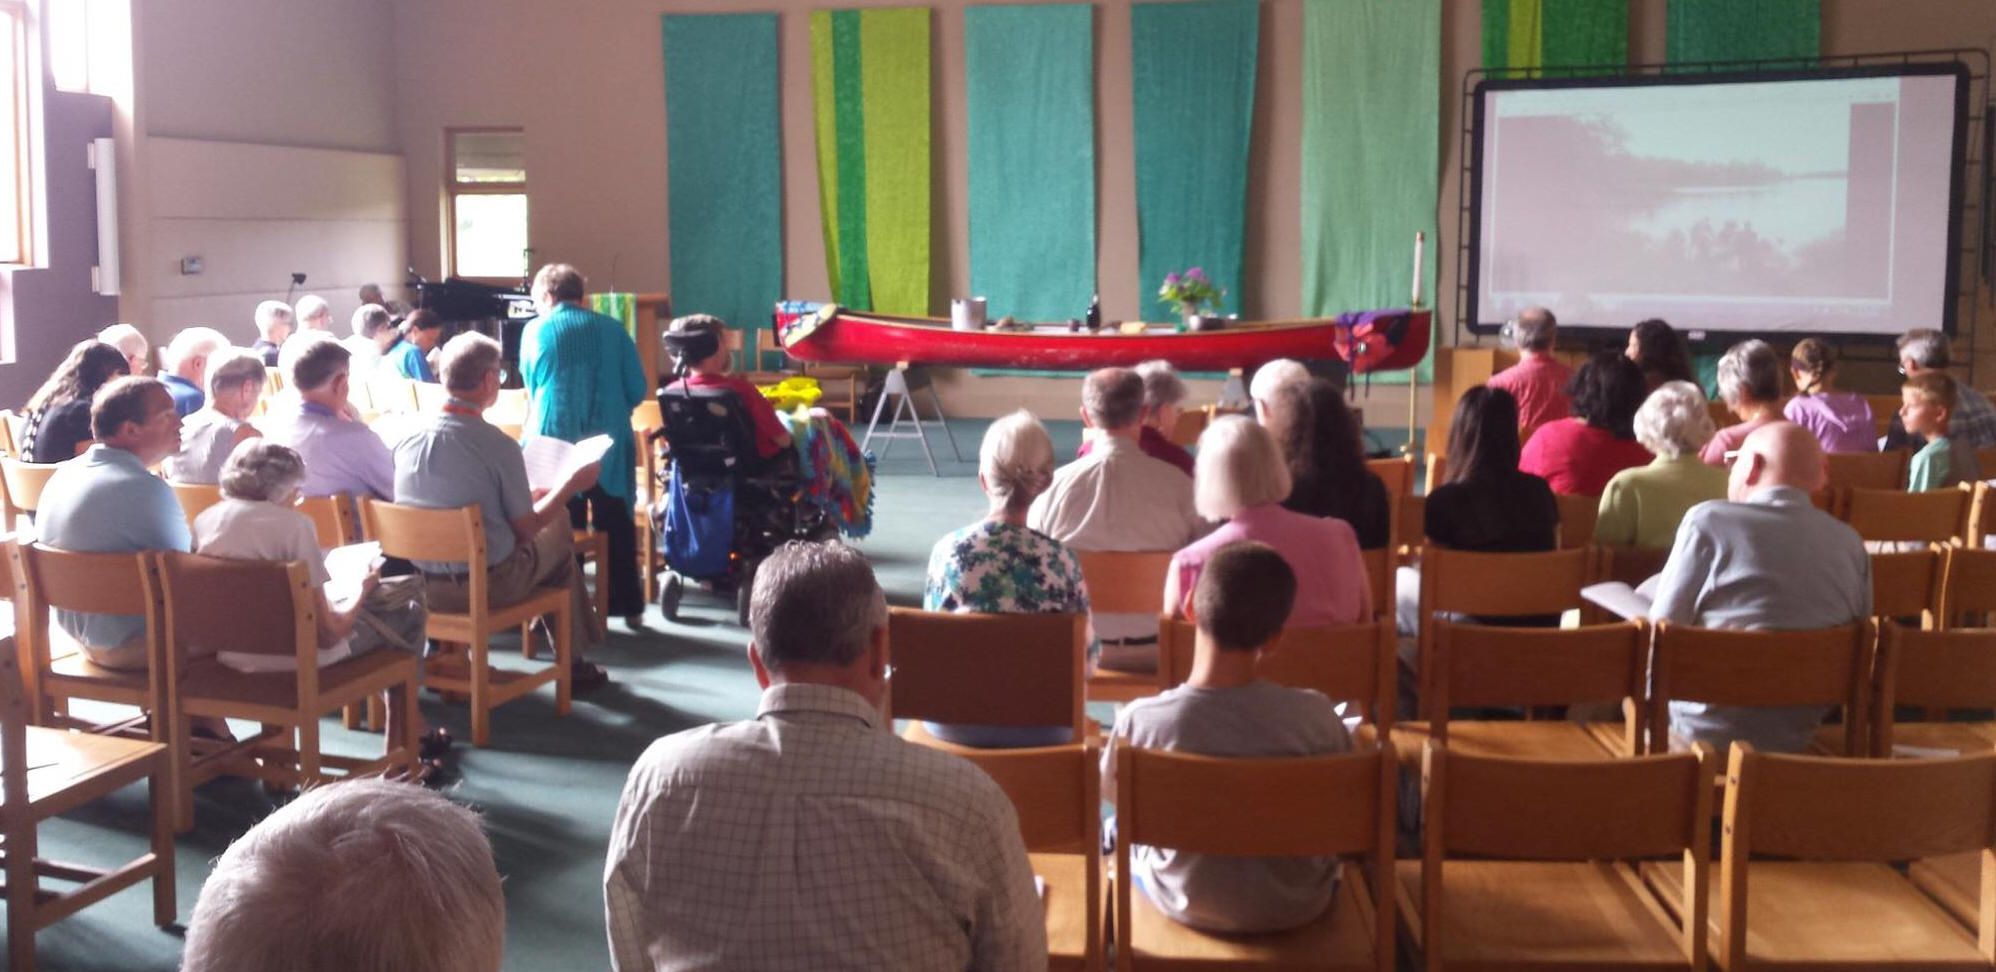 Worship at Advent Lutheran